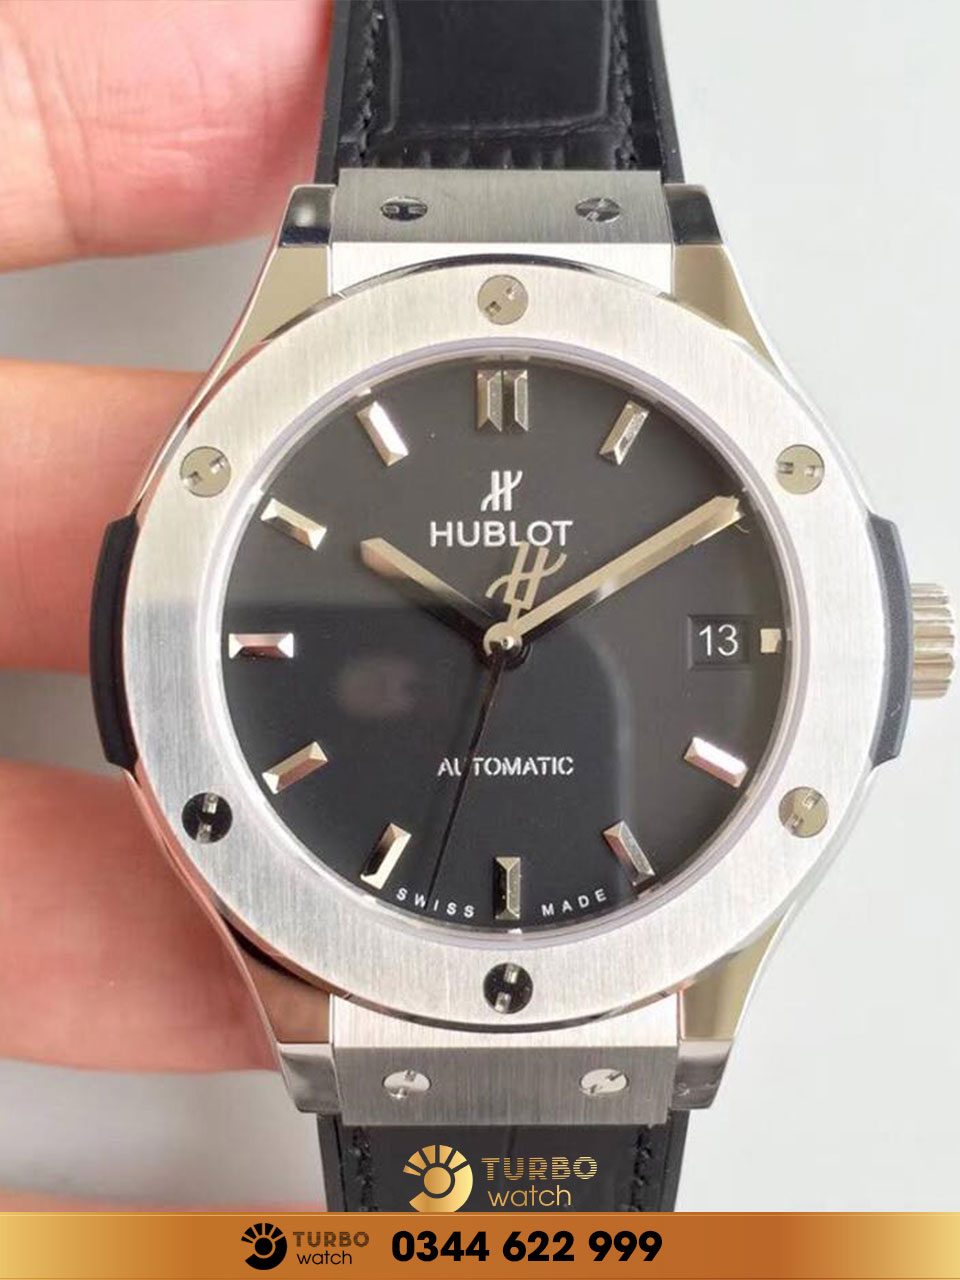 HUBLOT CLASSIC FUSION 38MM BLACK DIAL fake 1-1 replica 1-1 cao cấp